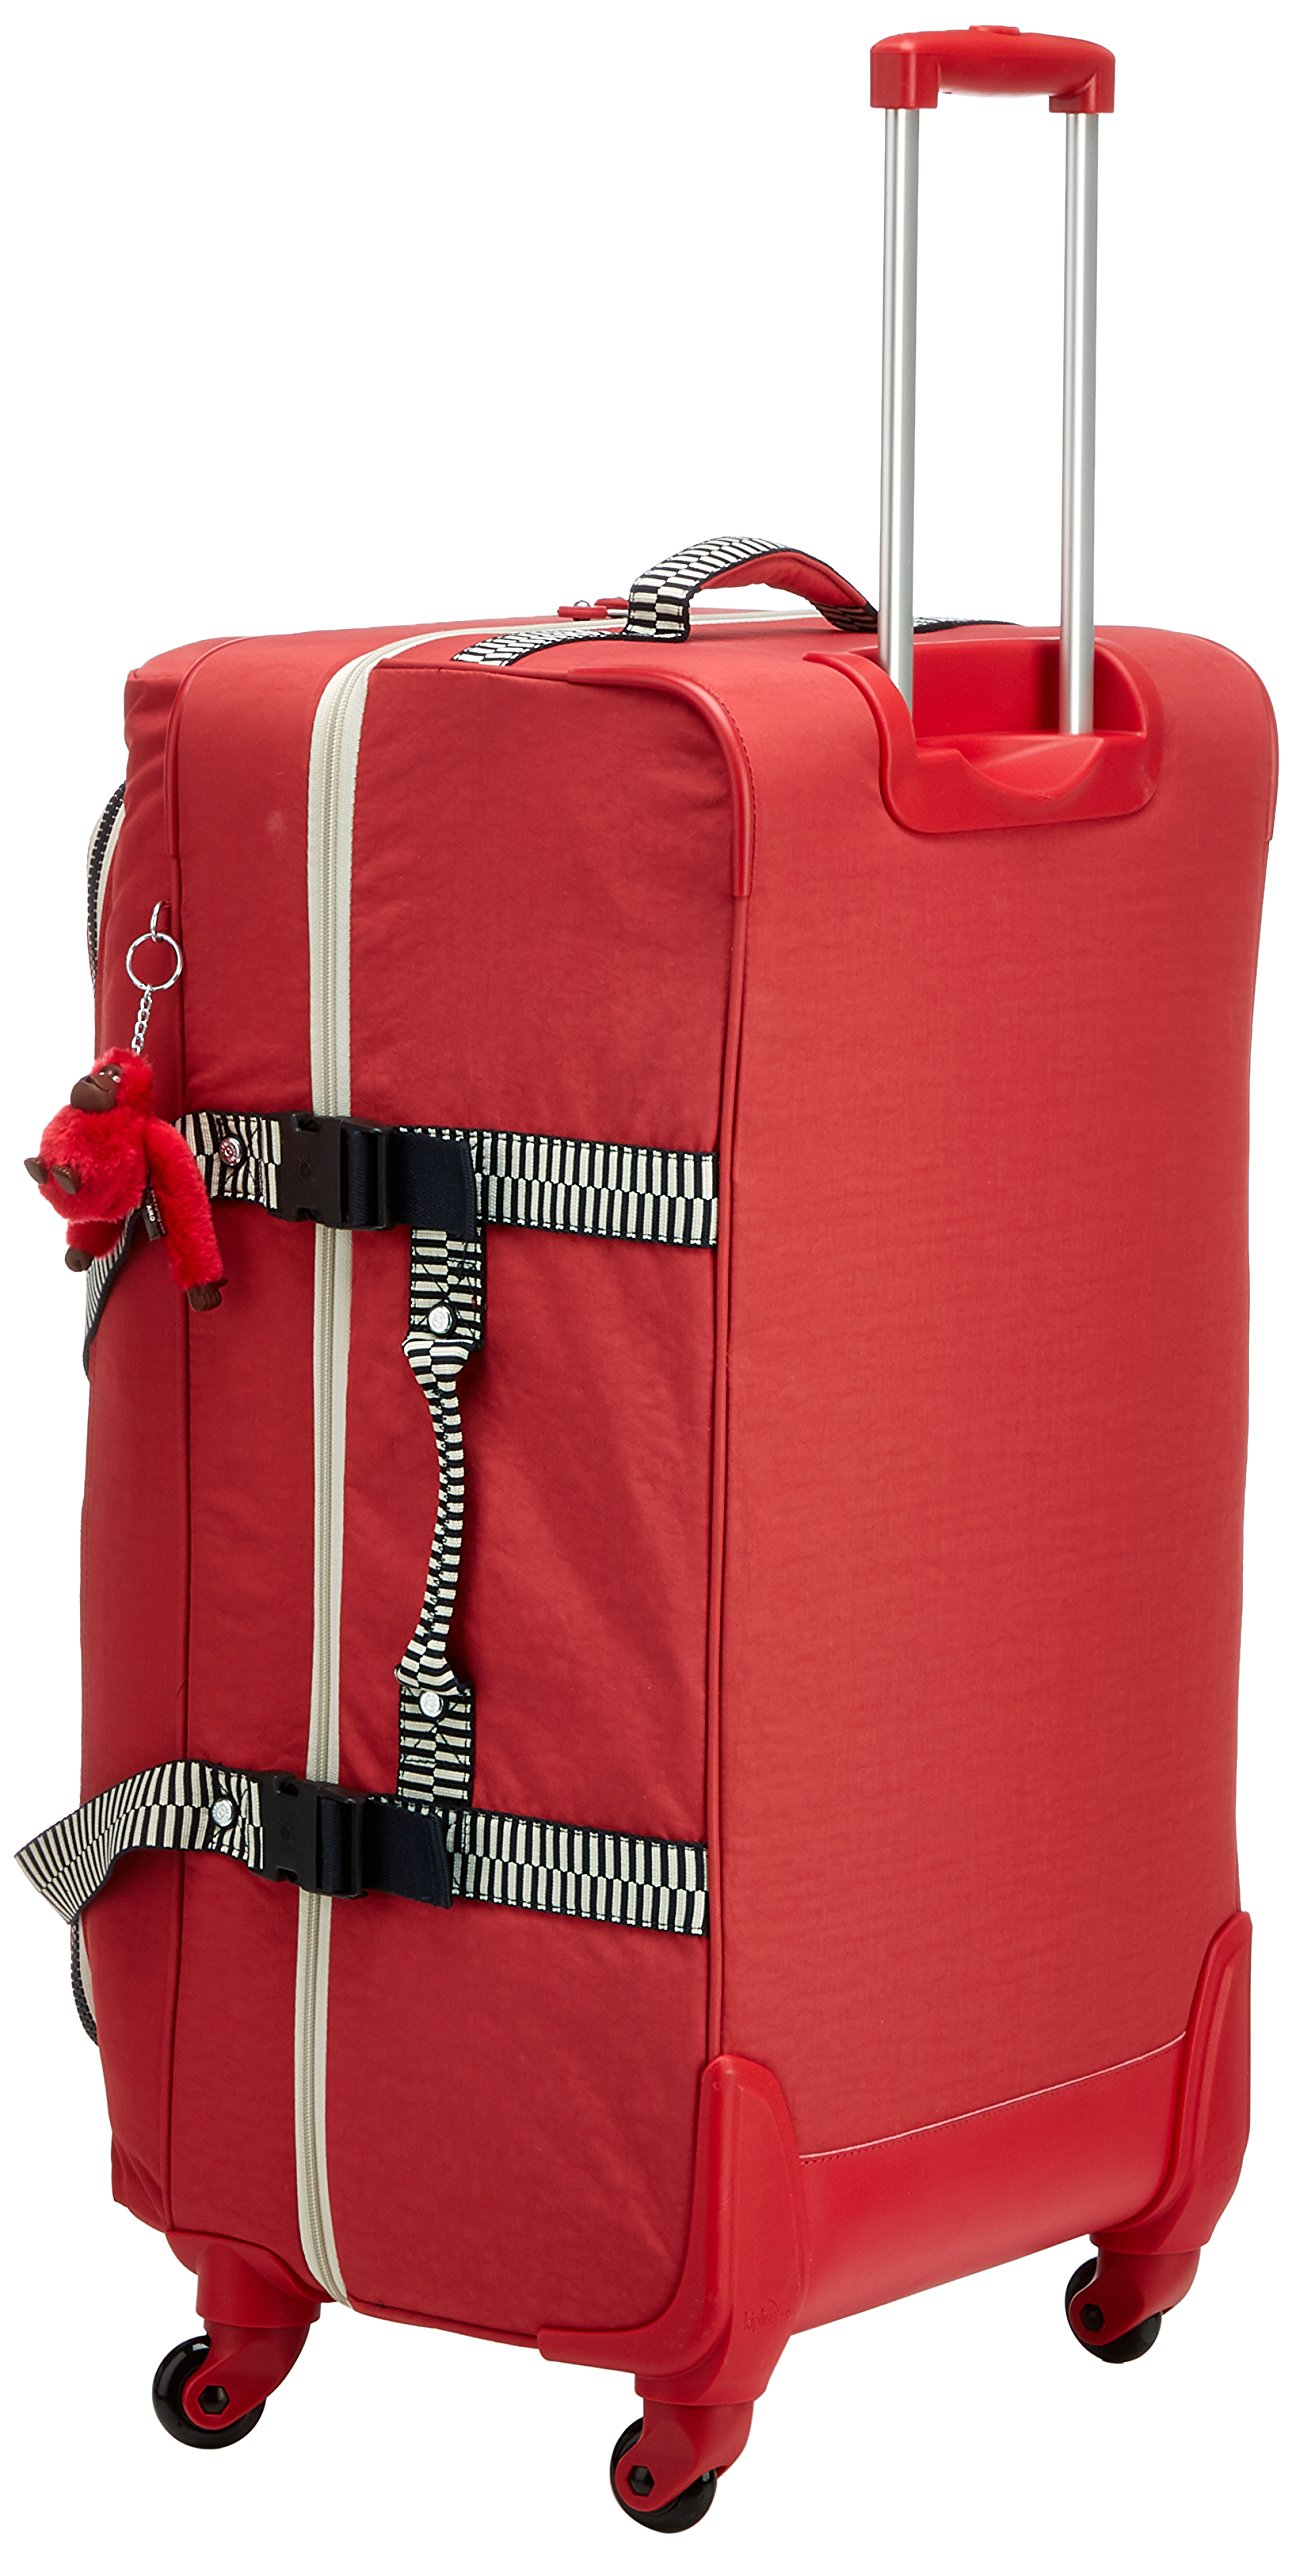 Kipling Cyrah L Suitcase - topluggage.co.uk c287c75a1a0d6